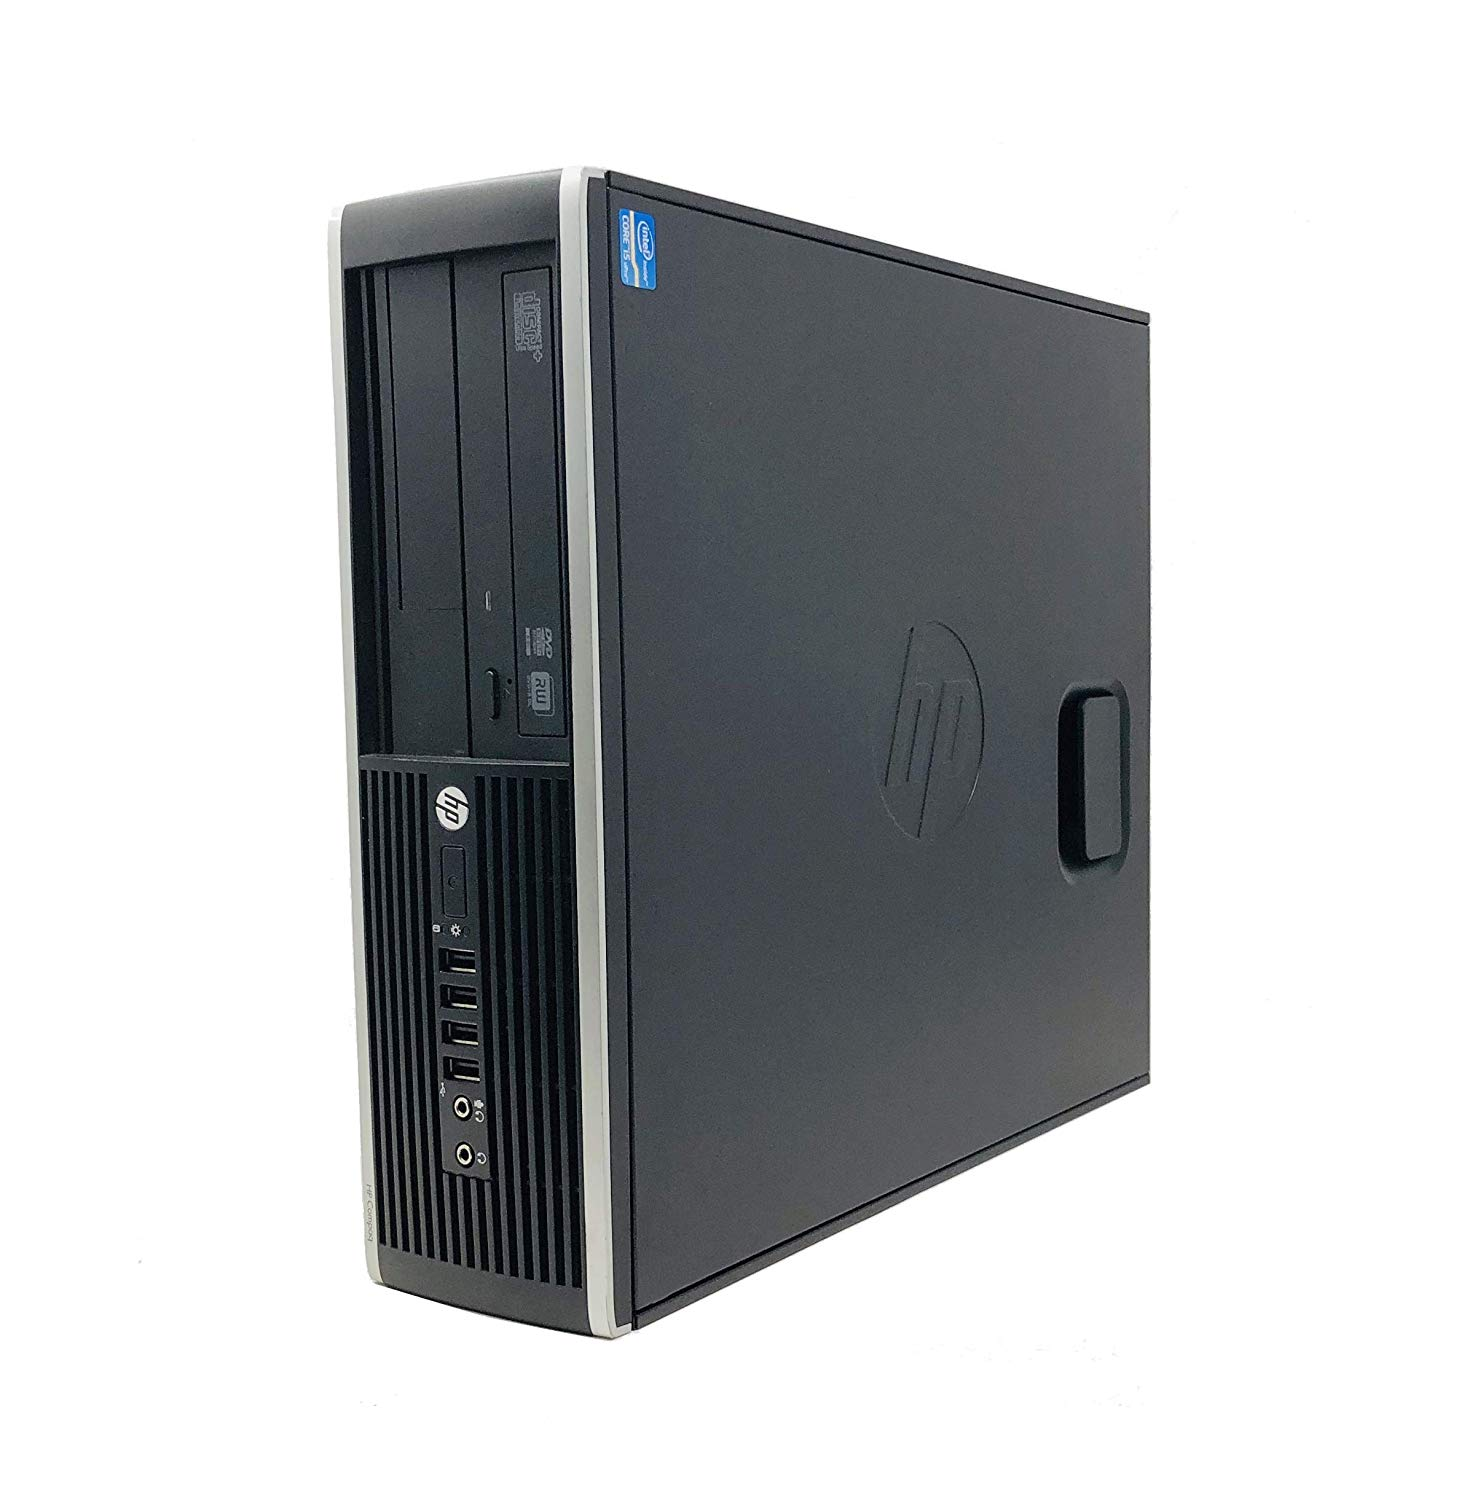 Hp Elite 8200 - Ordenador De Sobremesa (Intel  I5-2400,Sin Lector, 8GB De RAM, Disco SSD De 240GB , Windows 7 PRO ) - Negro (Reacondicionado)